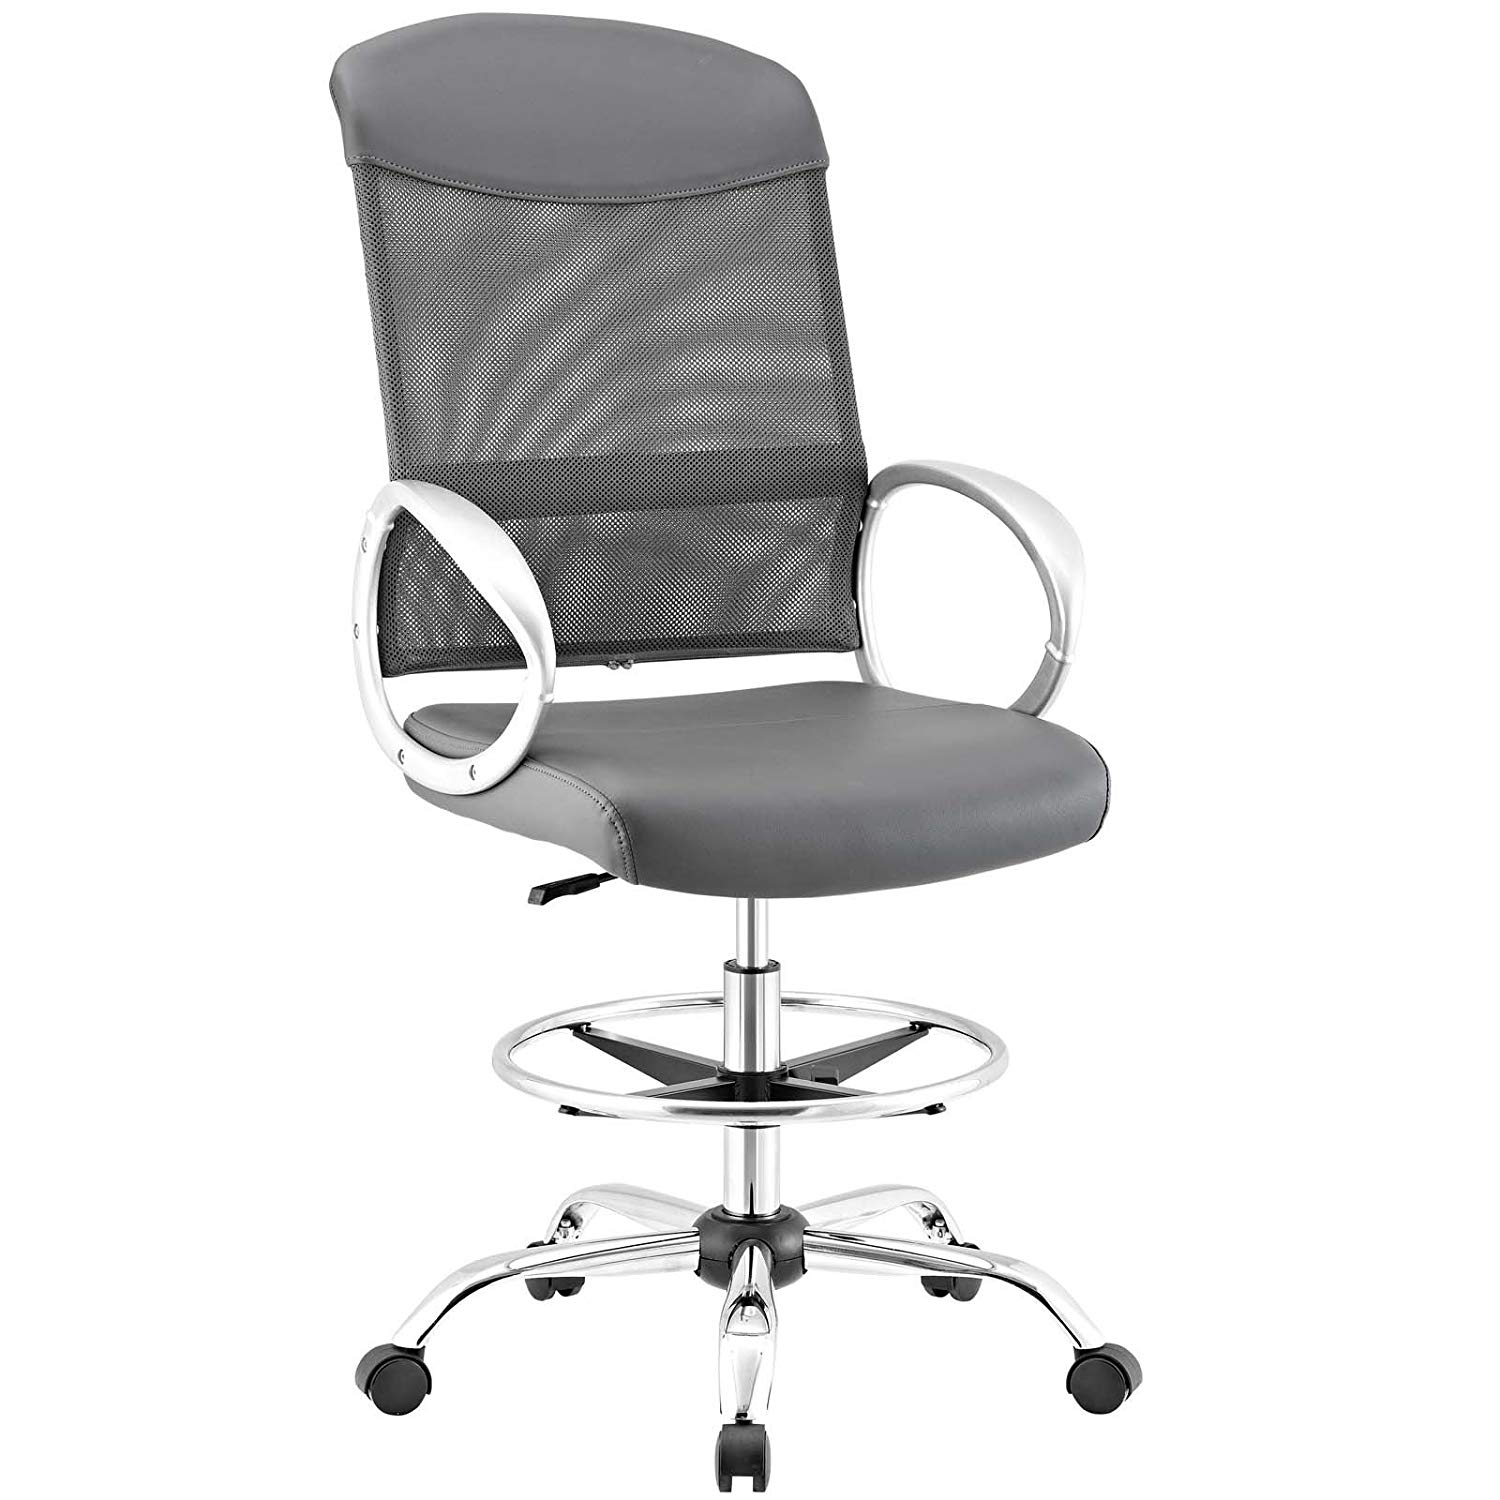 Modway EEI-2864-GRY Emblem Mesh and Vinyl Drafting Chair, Gray